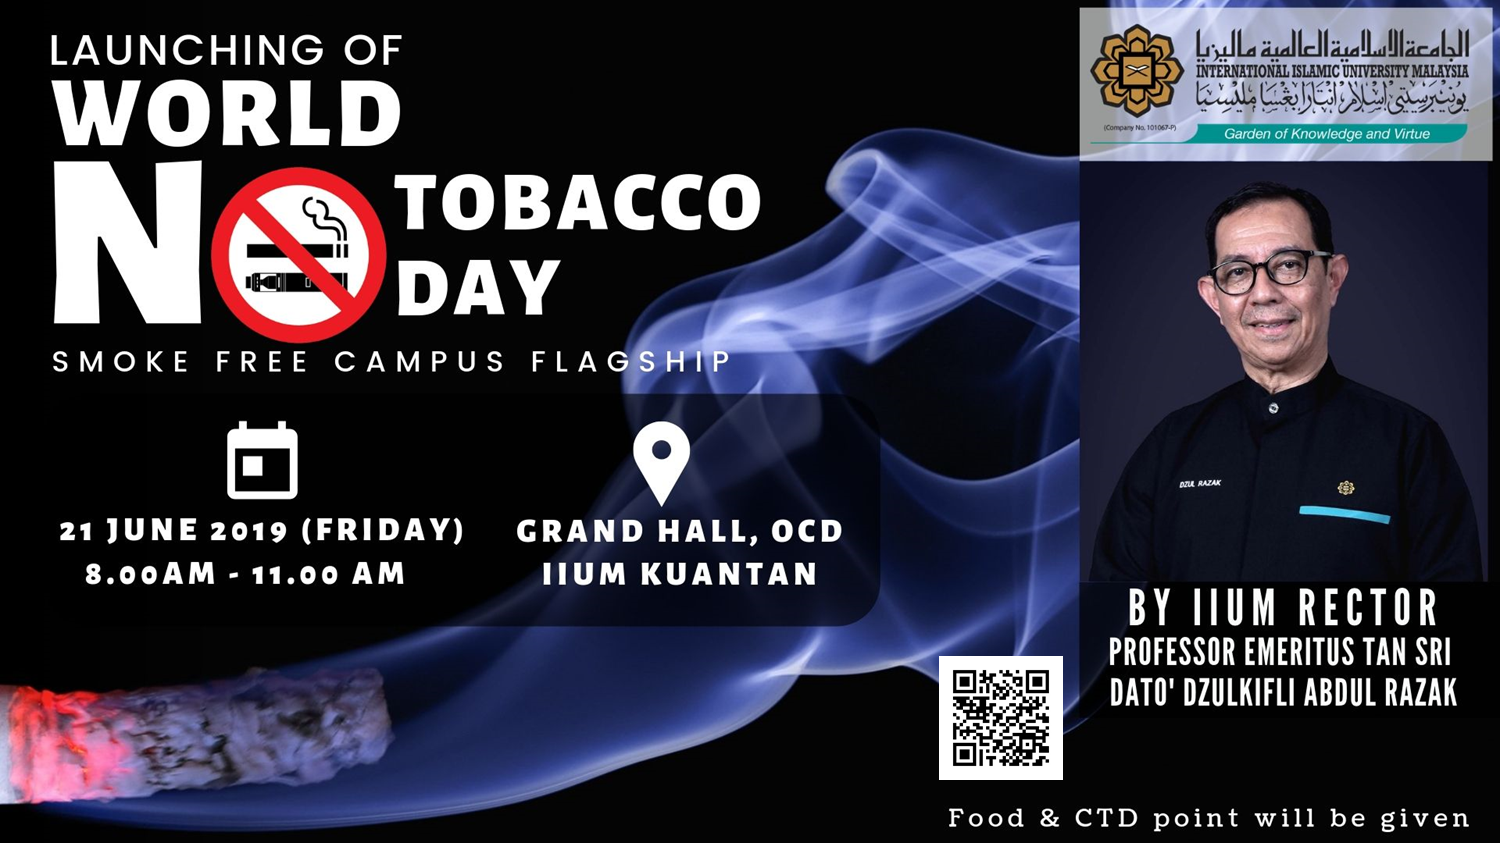 Launching of World No Tobacco Day : Smoke Free Campus Flagship